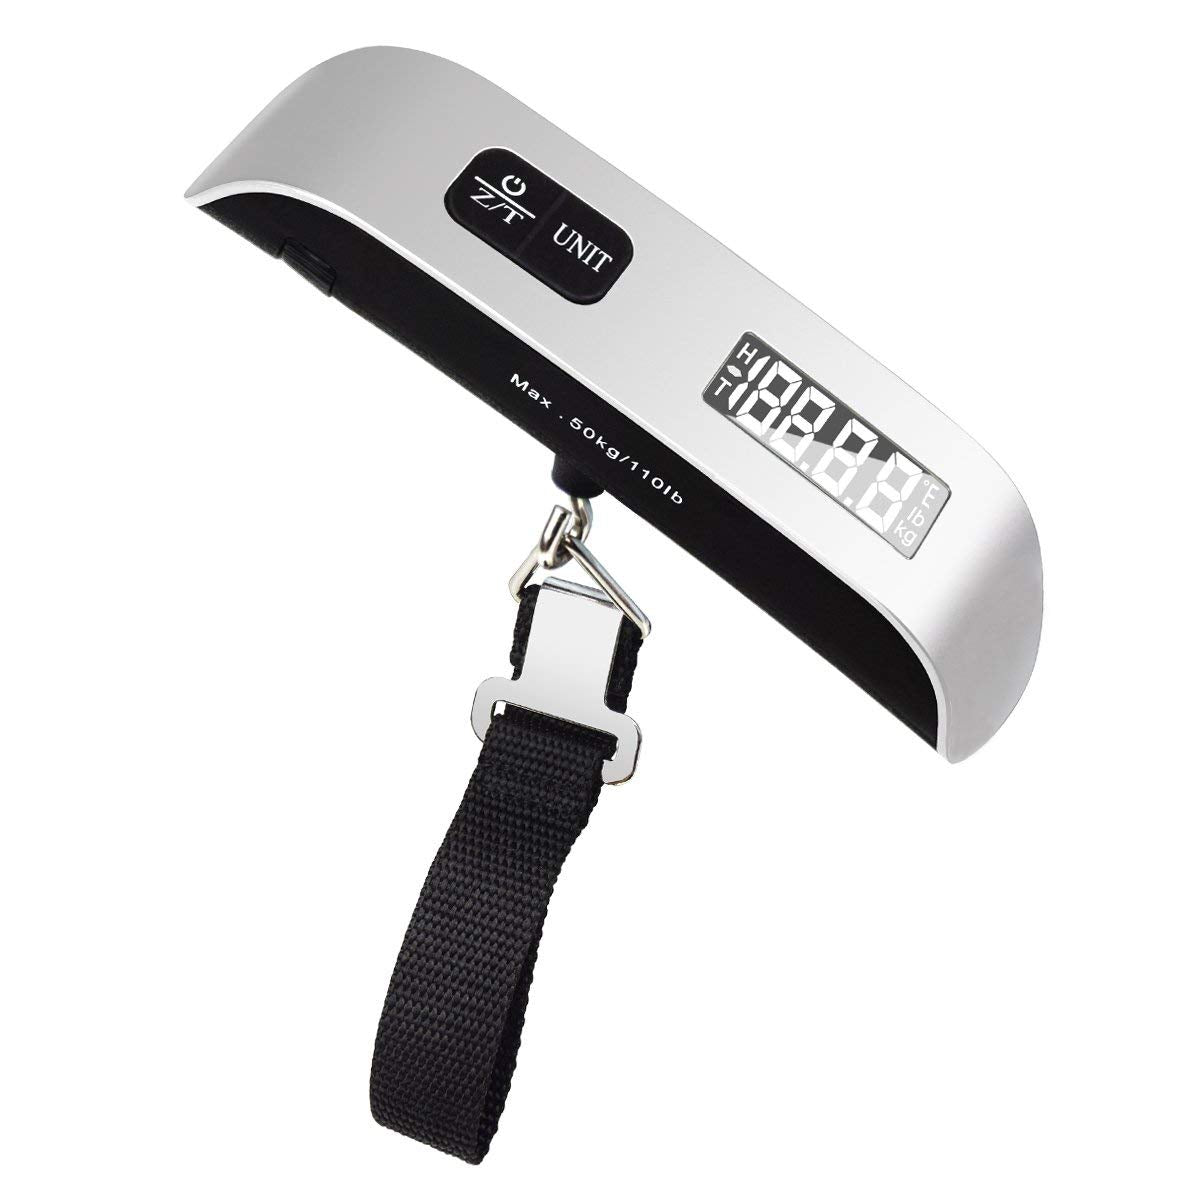 Portable Luggage Scale